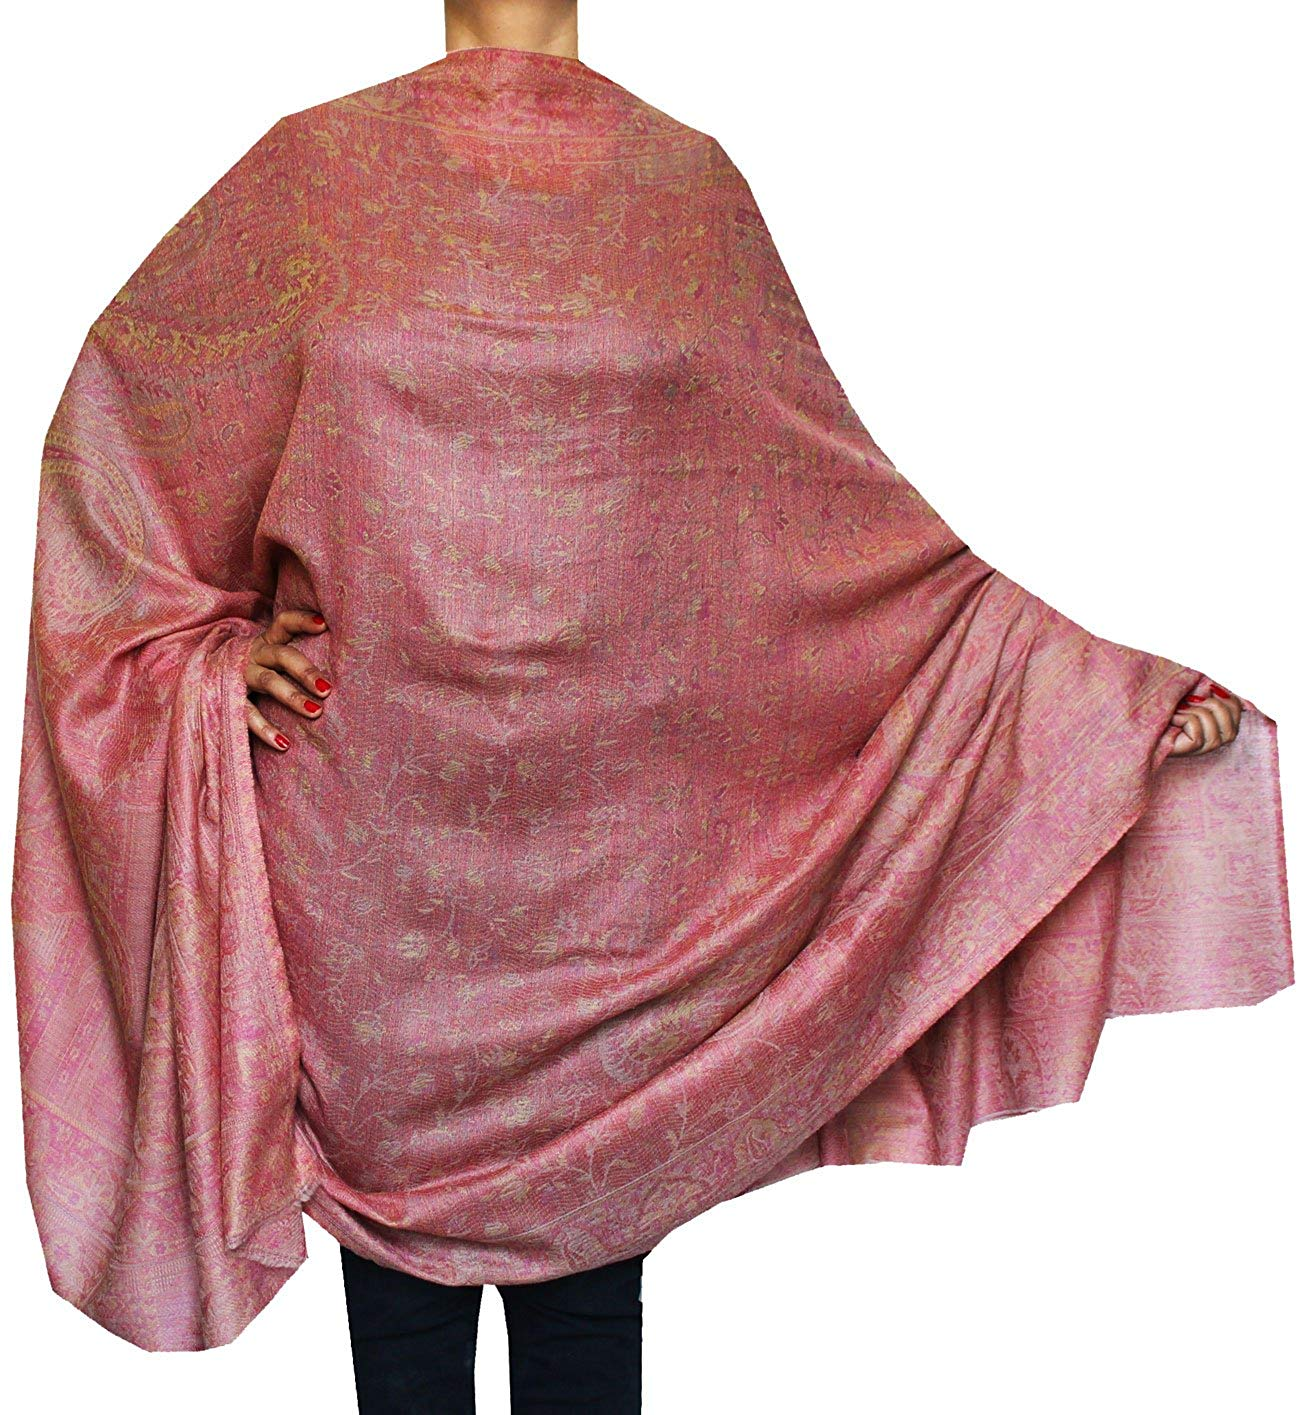 38ba431c9f Get Quotations · Maple Clothing Indian Shawl Paisley Wool Wraps Women's (82  x 42 inches)